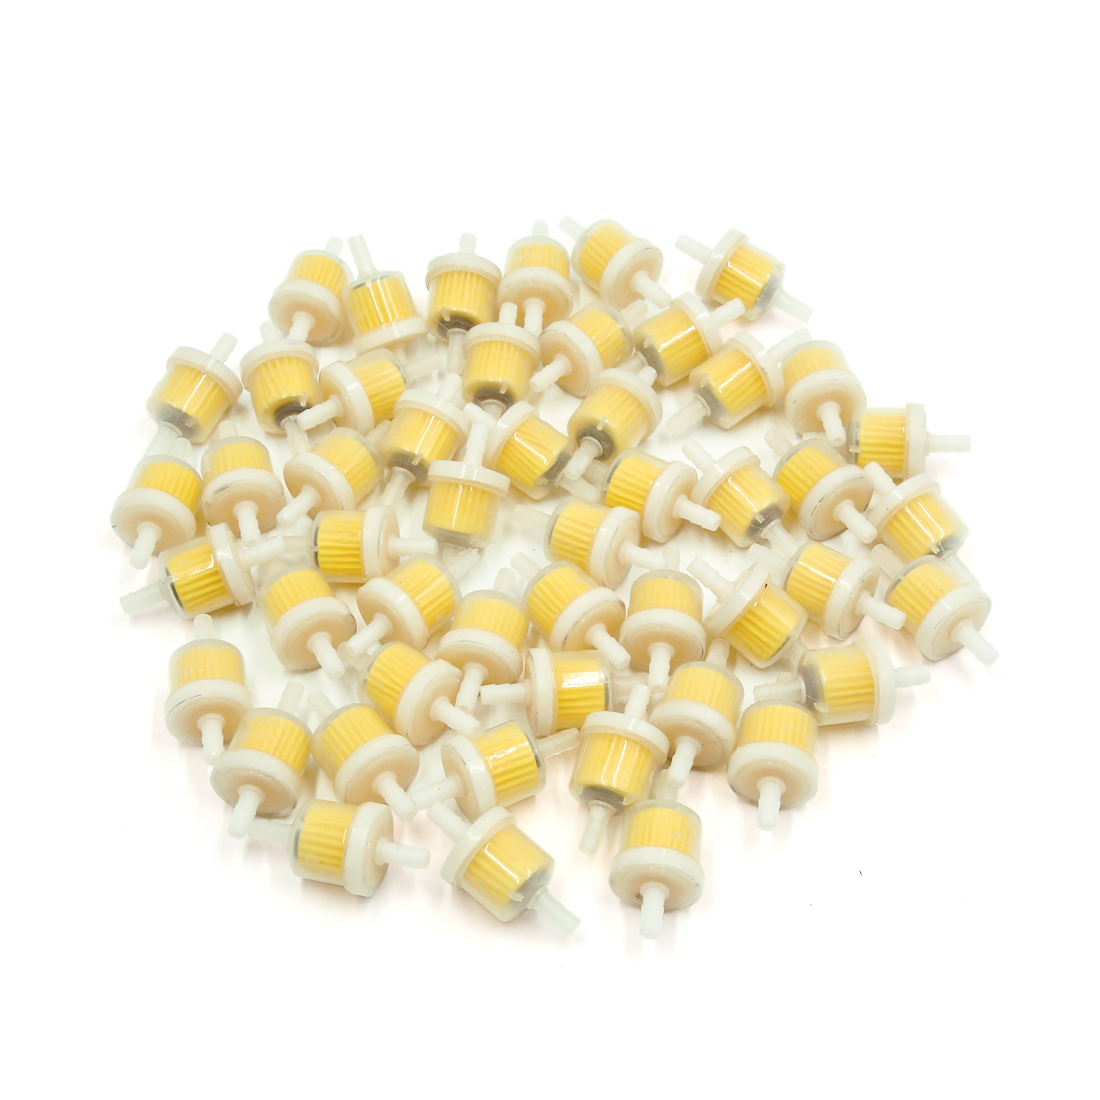 50Pcs White Plastic Magnetic Inline Gas Fuel Filter for Motorcycle Motorbike